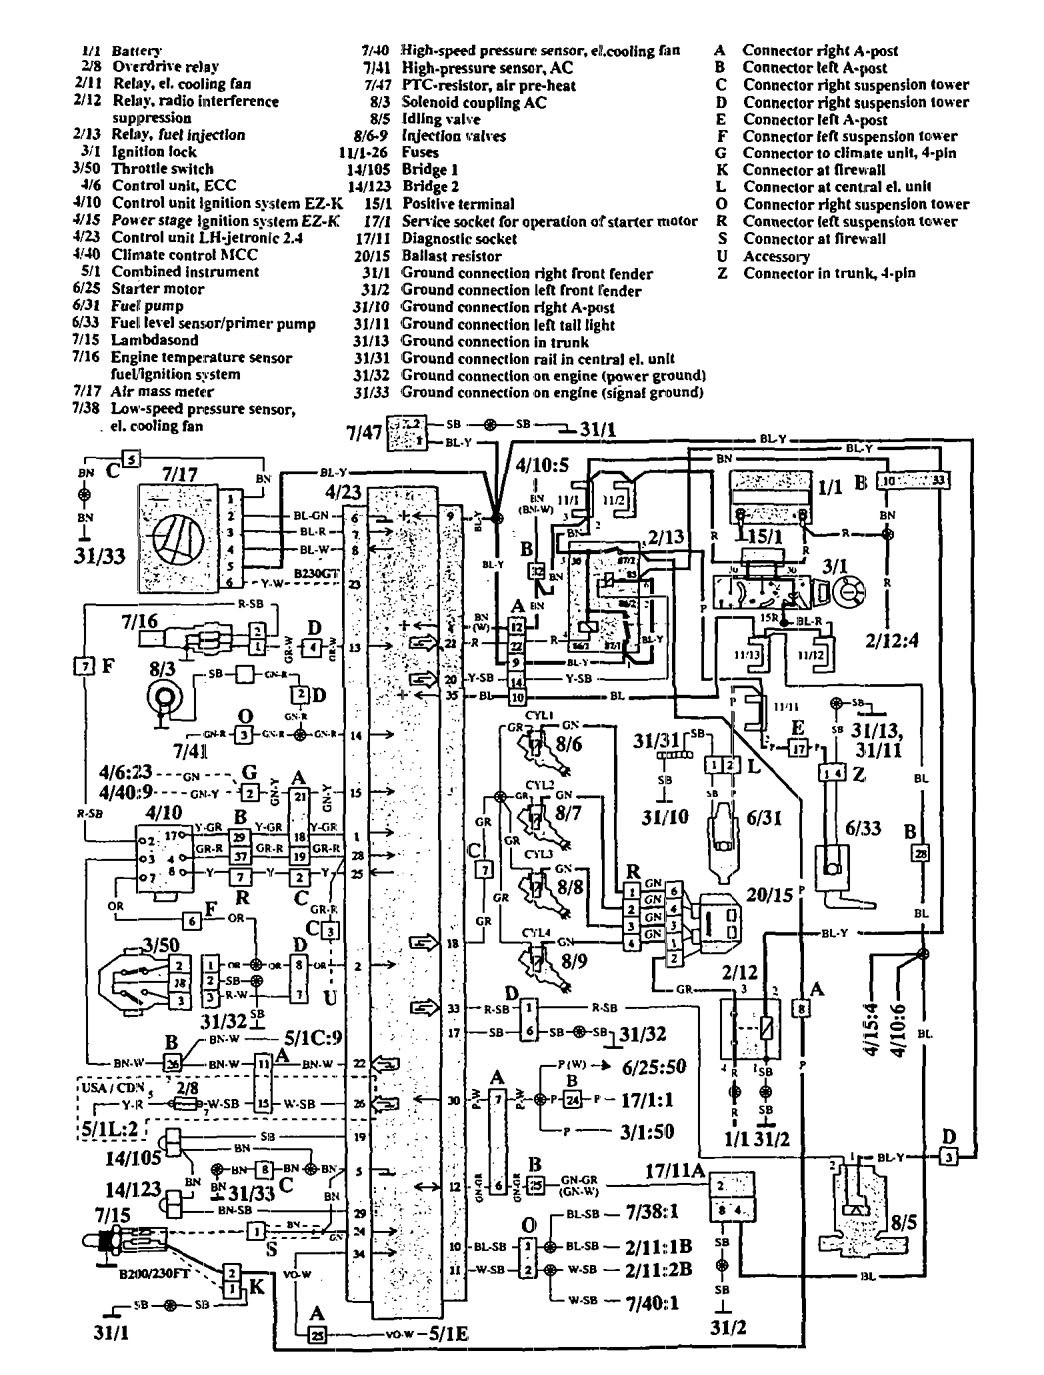 1995 gmc sierra ignition wiring diagram how email works explain with volvo 940 (1992) - diagrams fuel controls carknowledge